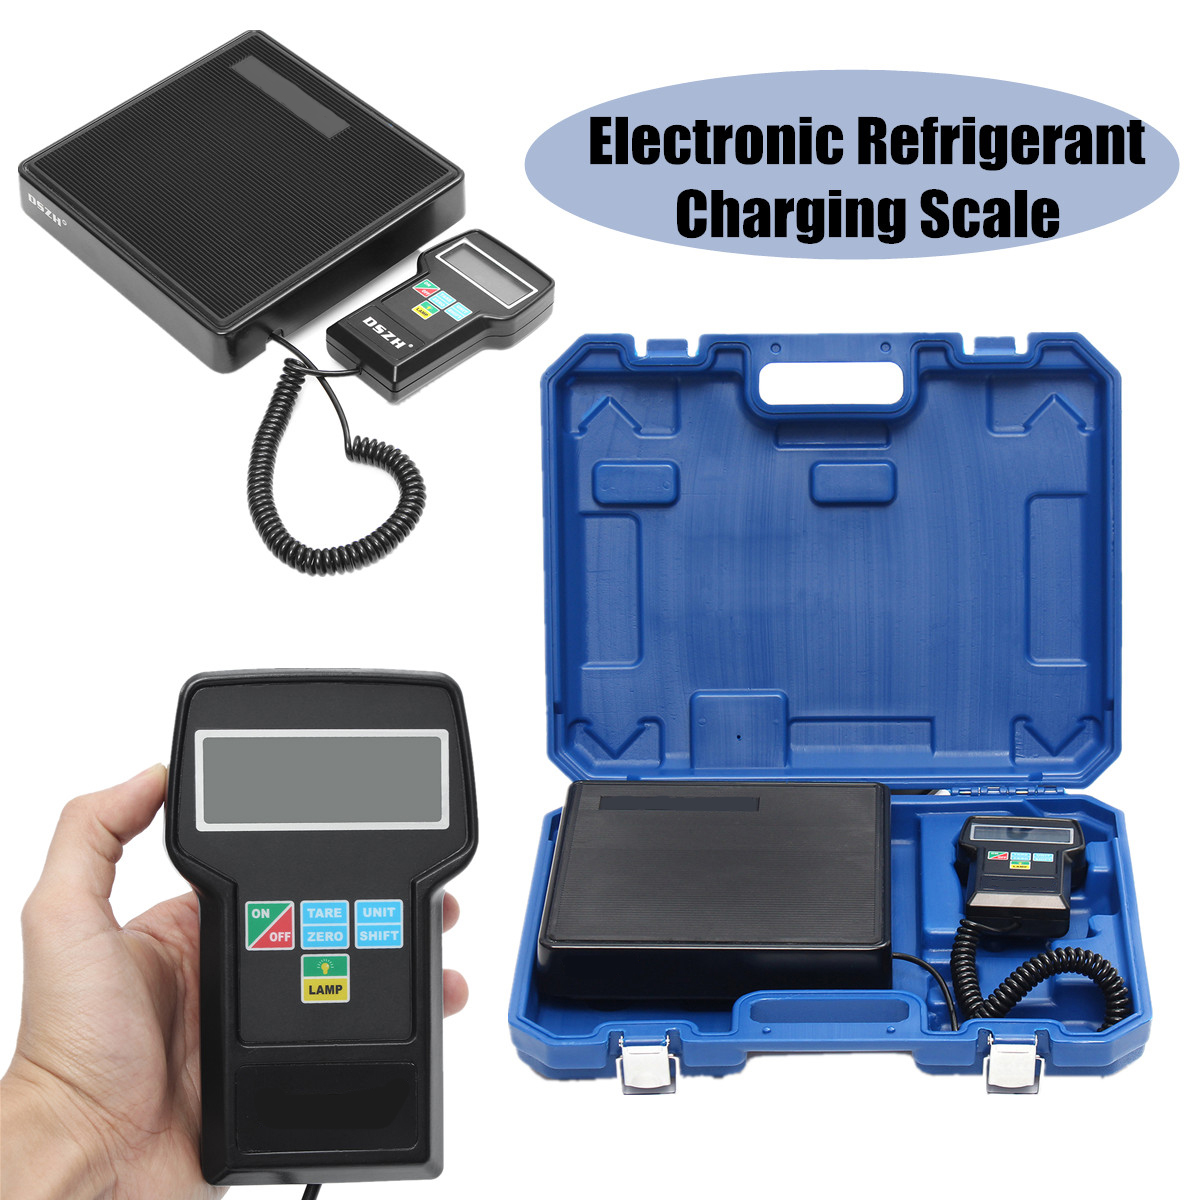 Digital Electronic Refrigerant Charging Scale Weighing Weight HVAC Precision Car Refrigerant With English Instruction